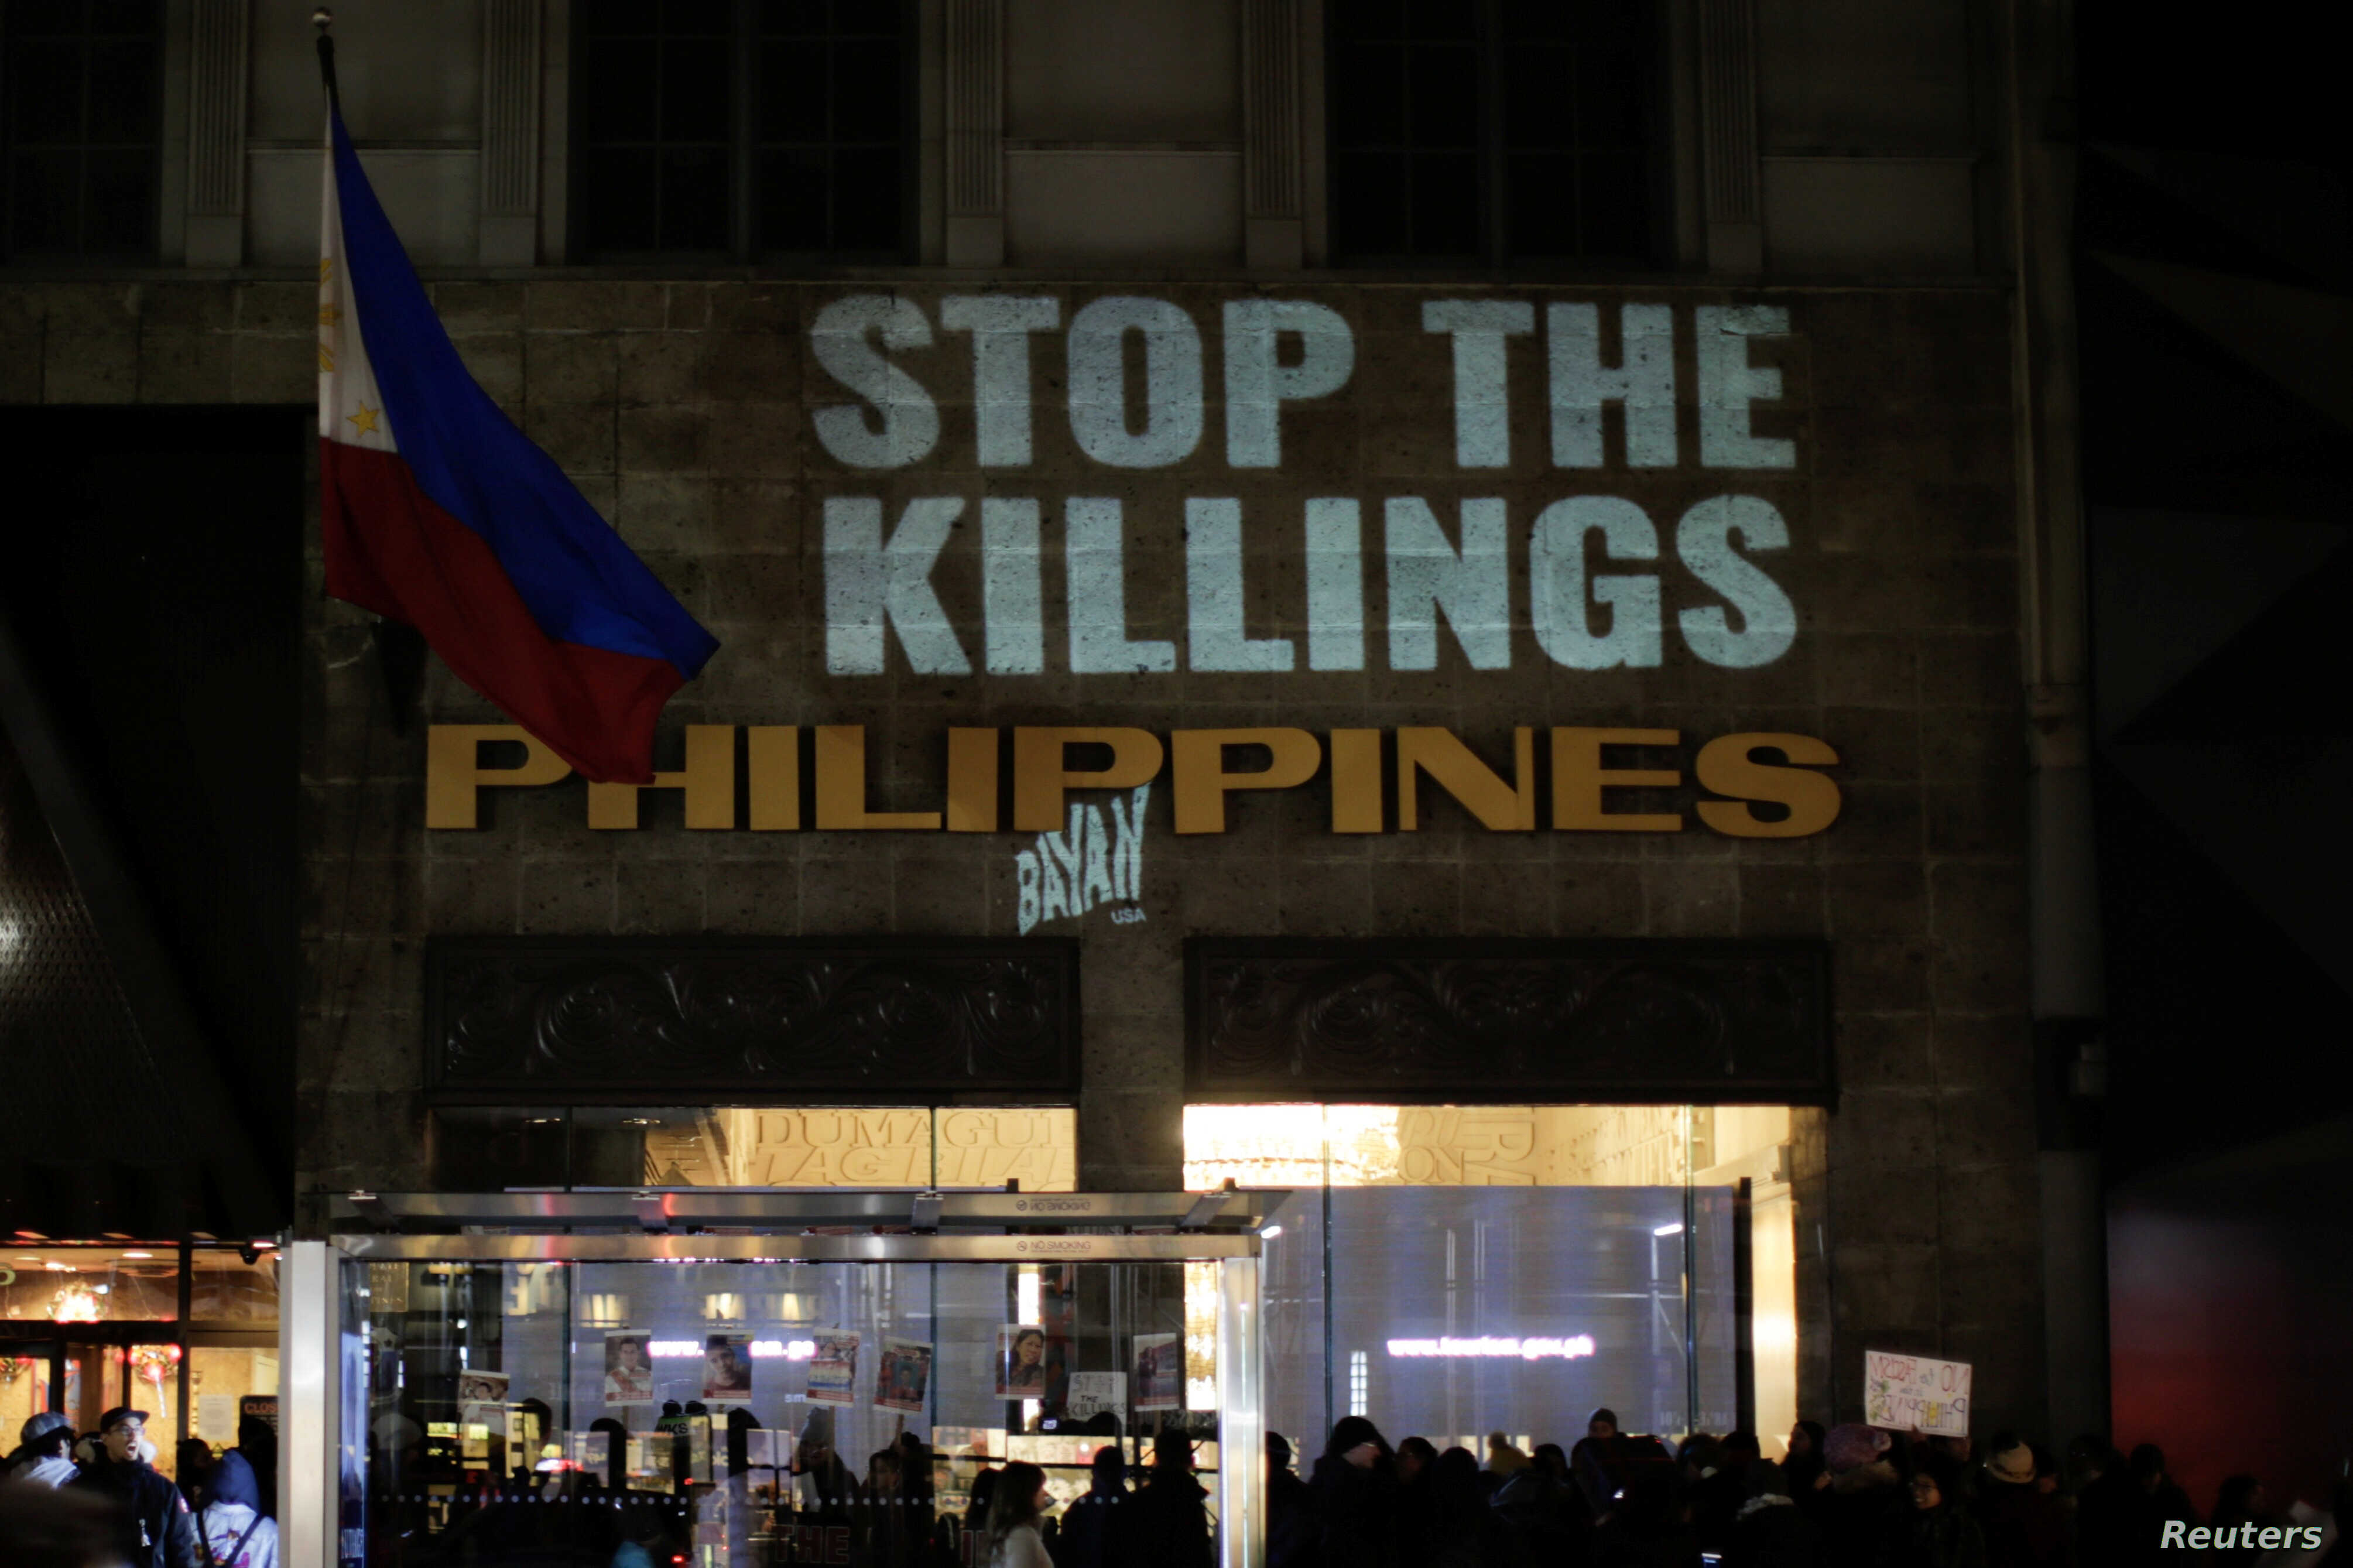 People take part in a protest against the government of Philippine President Rodrigo Duterte in front of the Philippine consulate in New York, Dec. 10, 2017.